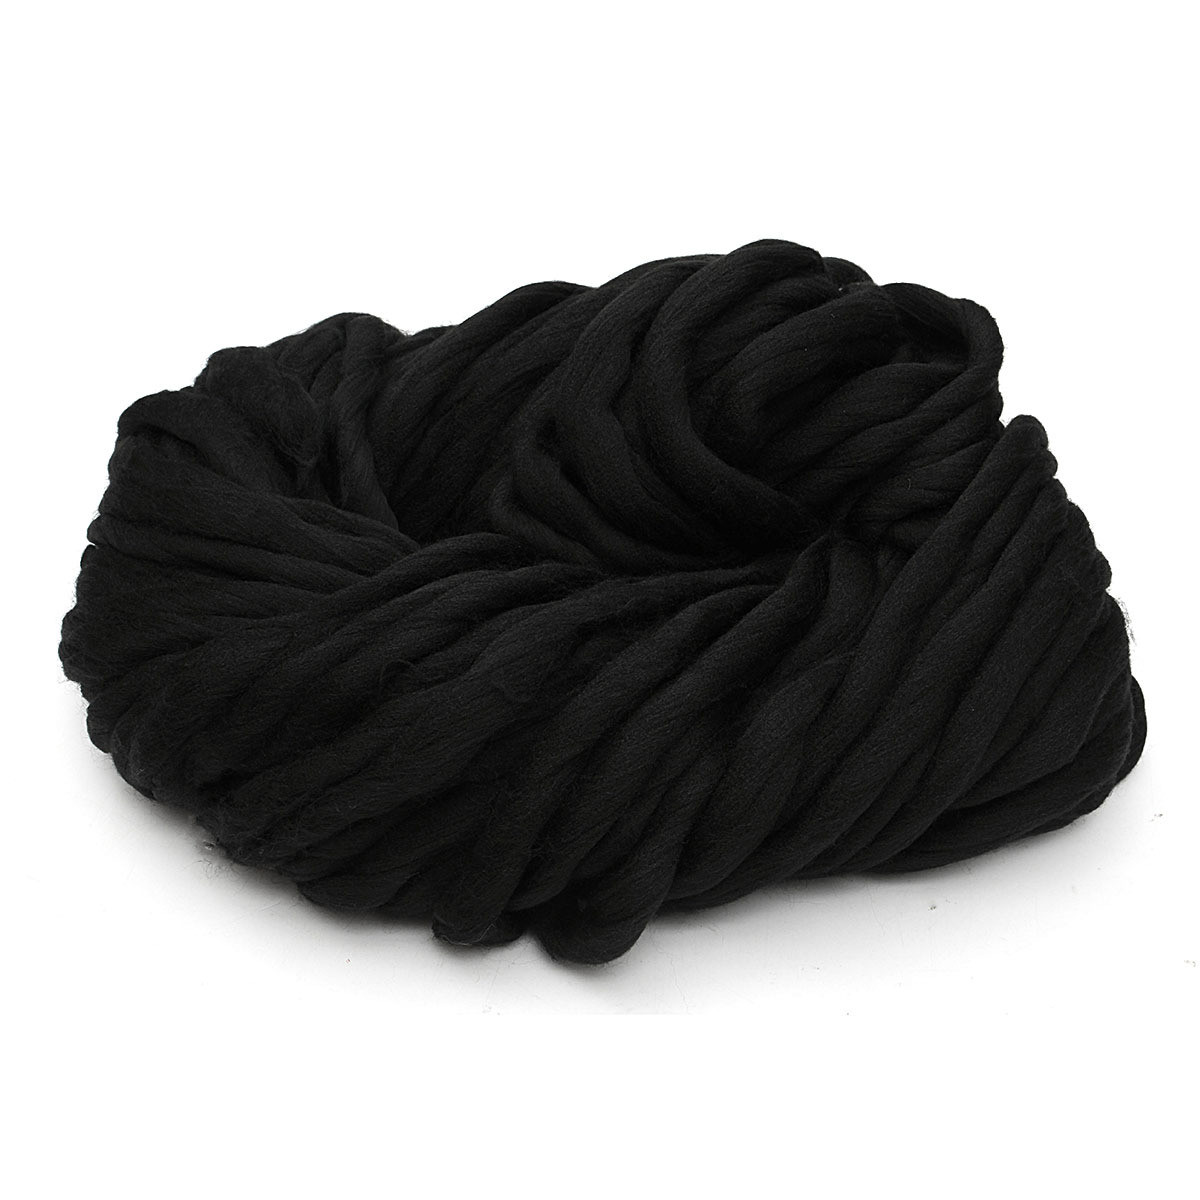 Awesome New 35m soft Roving Bulky Chunky Super Thick Big Spinning soft Bulky Yarn Of Fresh 49 Models soft Bulky Yarn